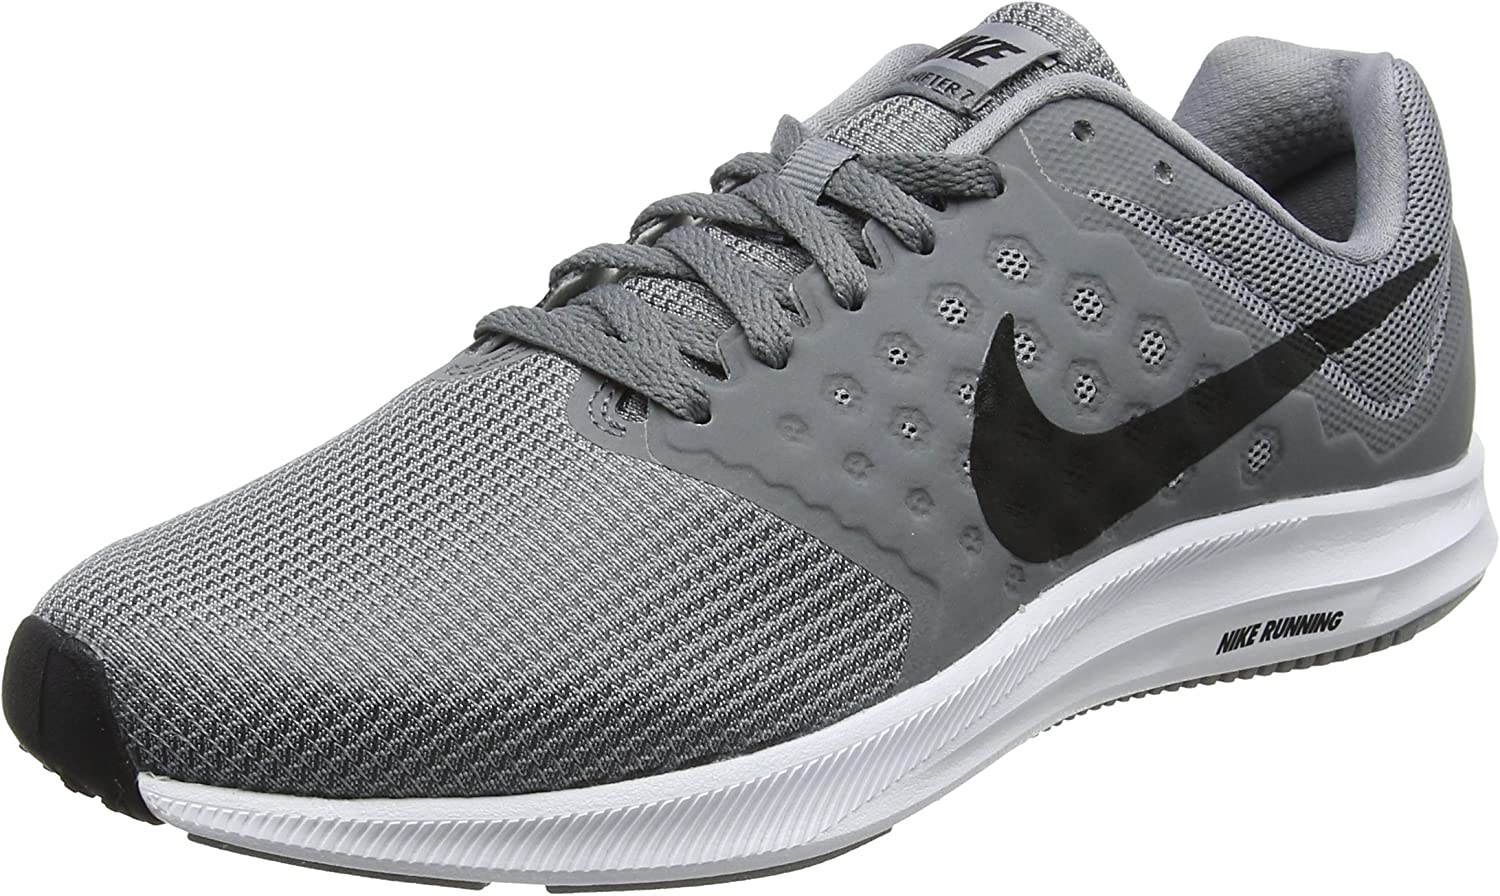 Nike Men s Downshifter 7 Running Shoe Stealth Black Cool Grey White Size 11 M US